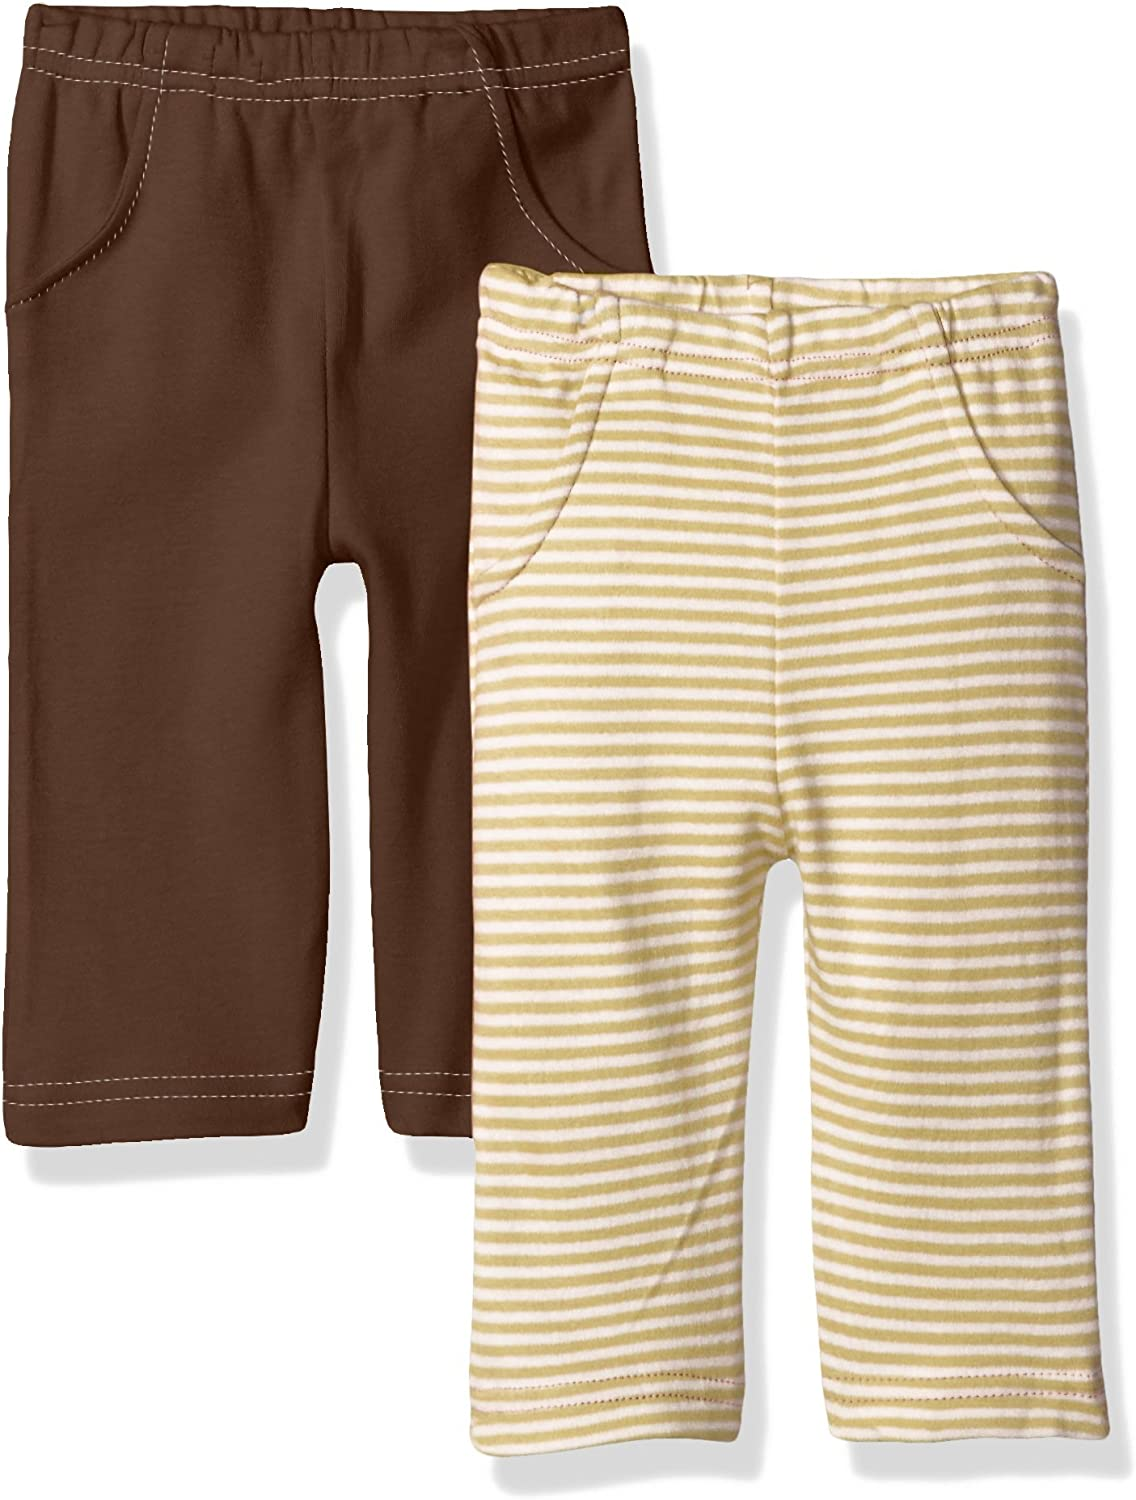 Touched by Nature Unisex Baby Organic Cotton Pants: Clothing